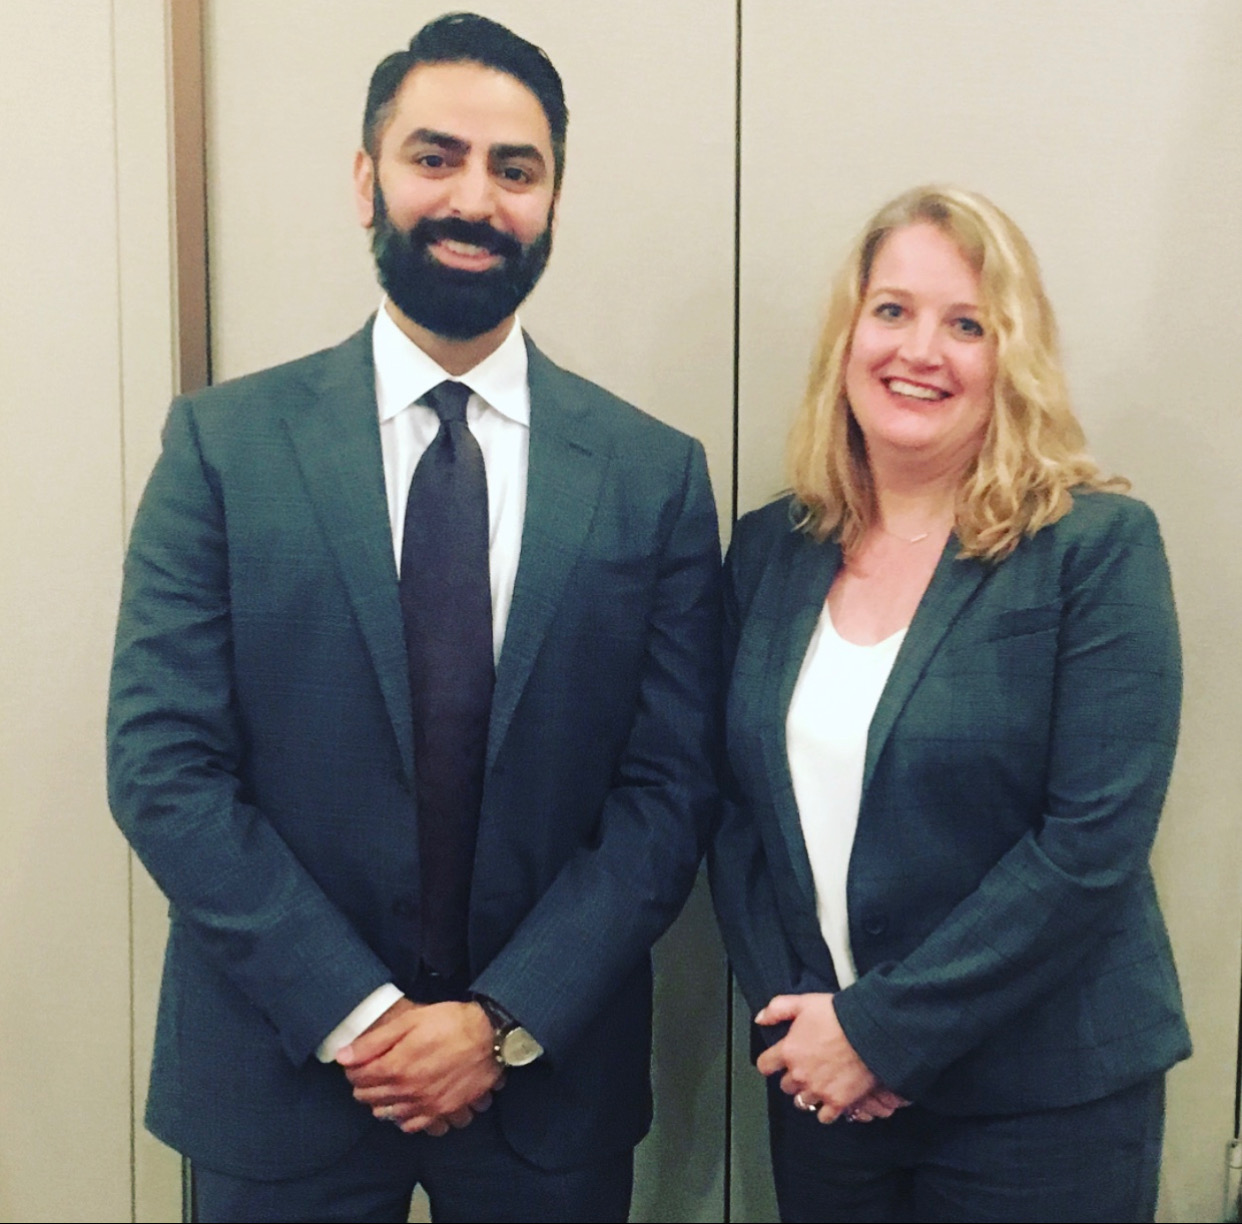 Wendy Weathers (C&A Senior Managing Attorney) & Atheeb Khateeb (C&A Managing Attorney)